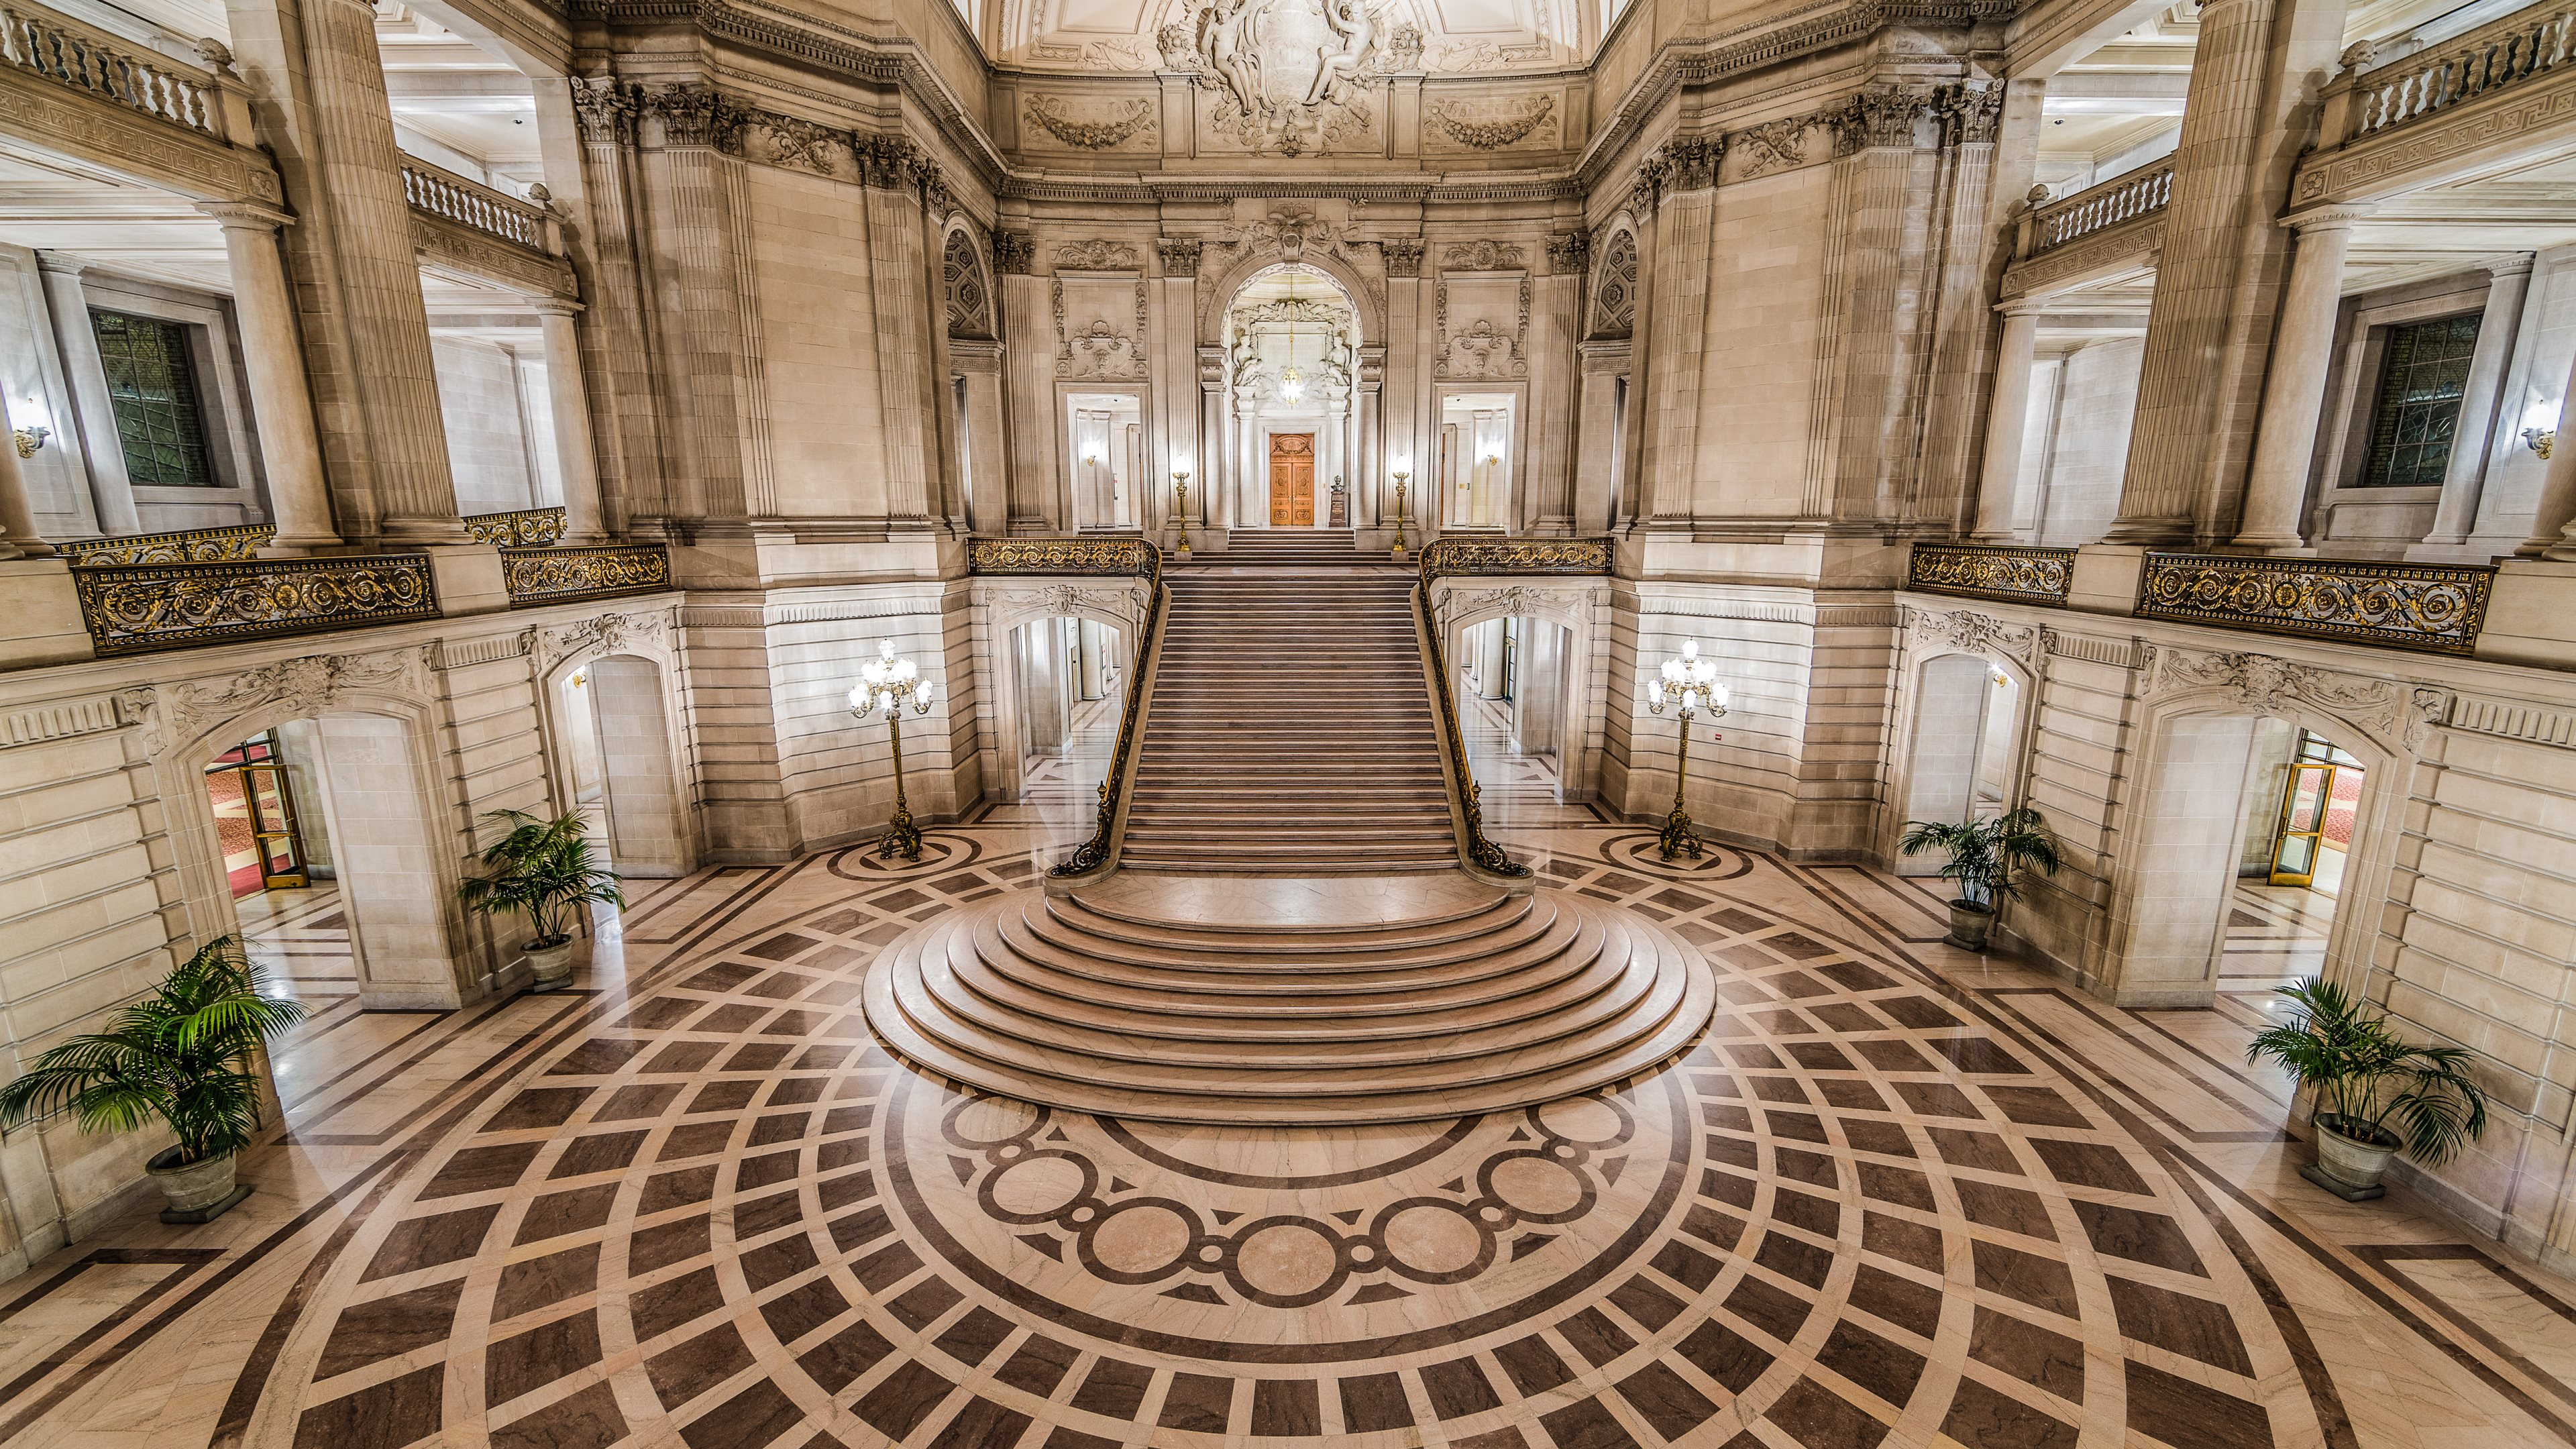 2 San Francisco City Hall Hd Wallpapers Background